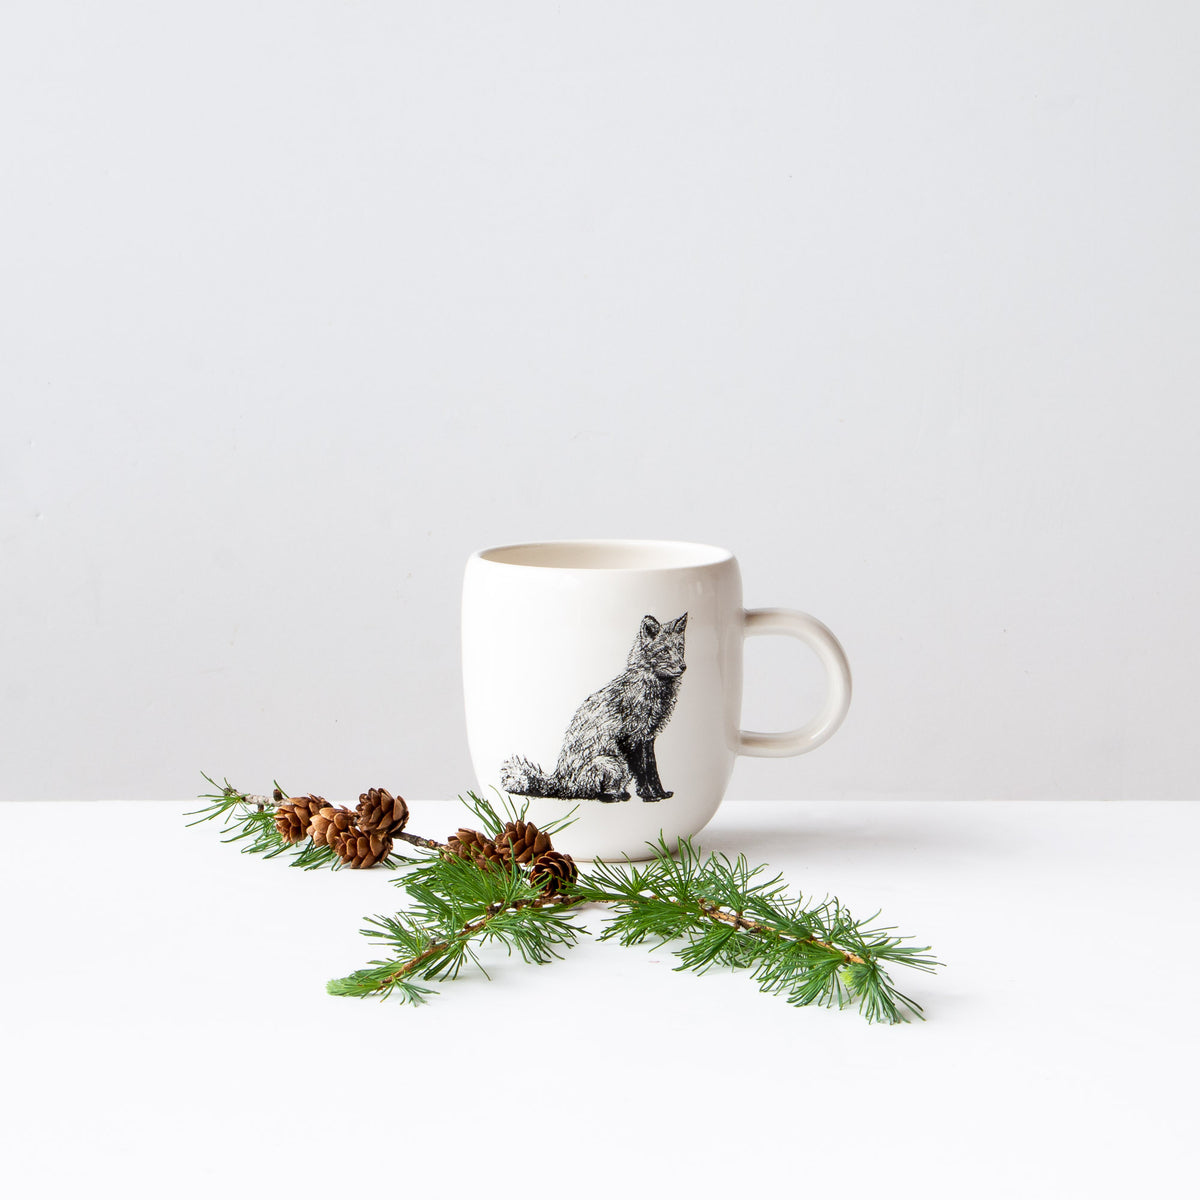 Red Fox - Handmade Porcelain Coffee Mug / Cup - Sold by Chic & Basta